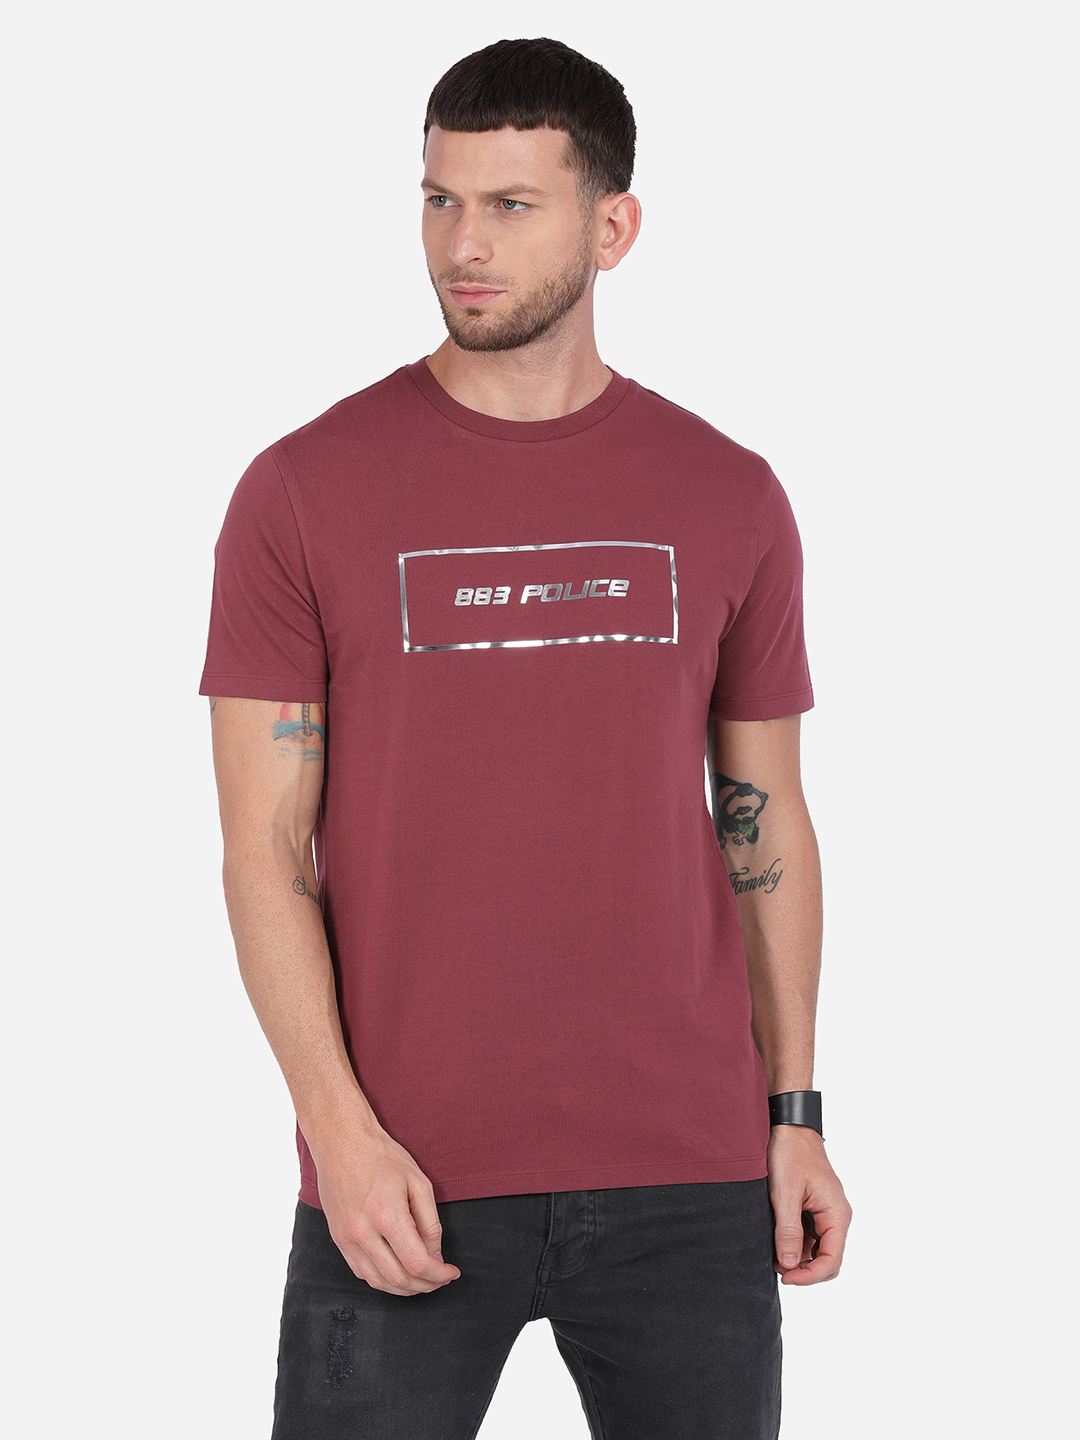 883 Police   883 Police Silvery T-shirt